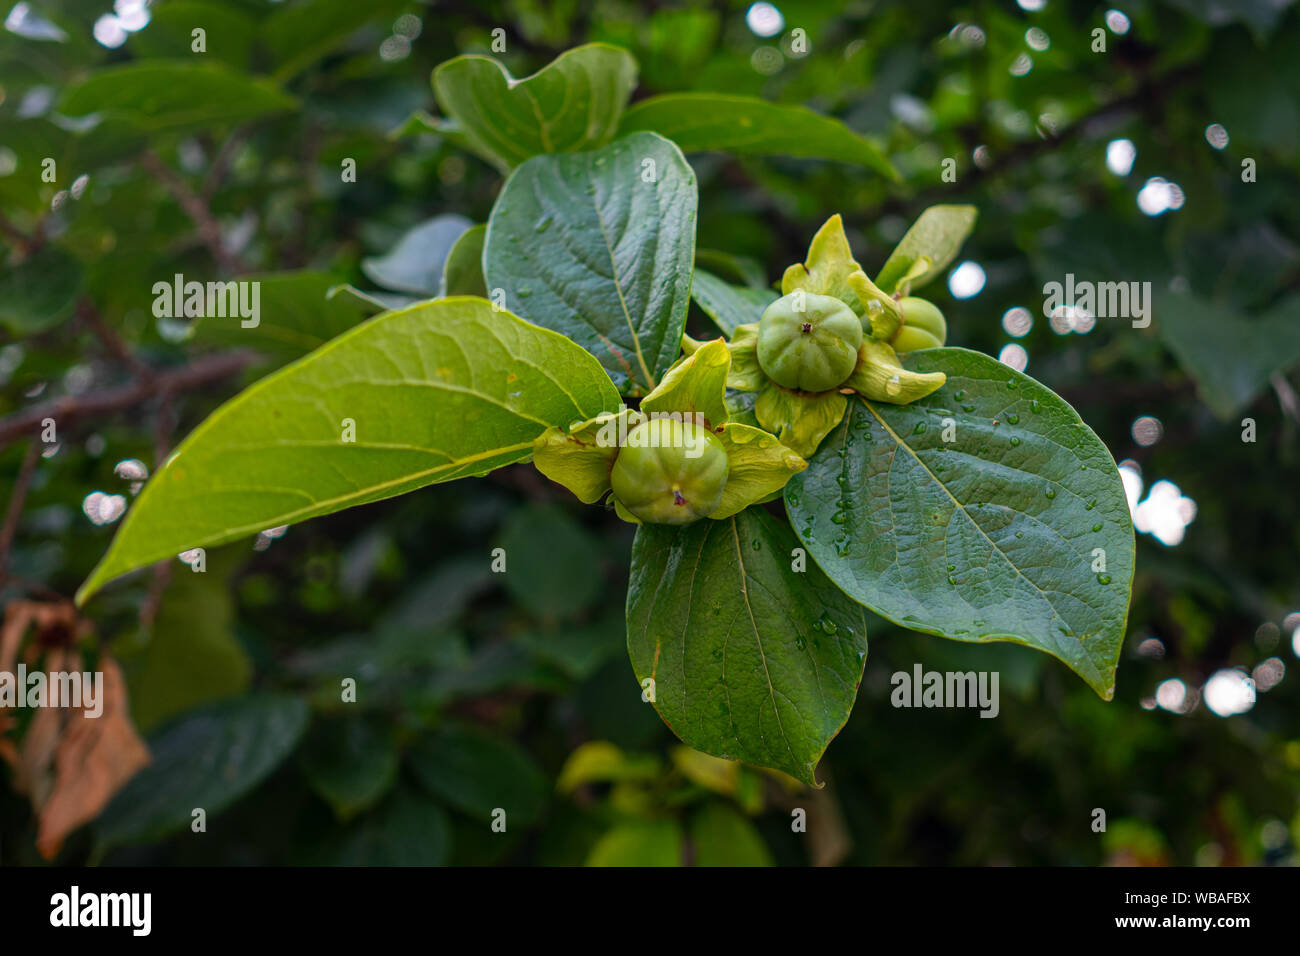 The fruits of unripe persimmons hang on a branch. Stock Photo